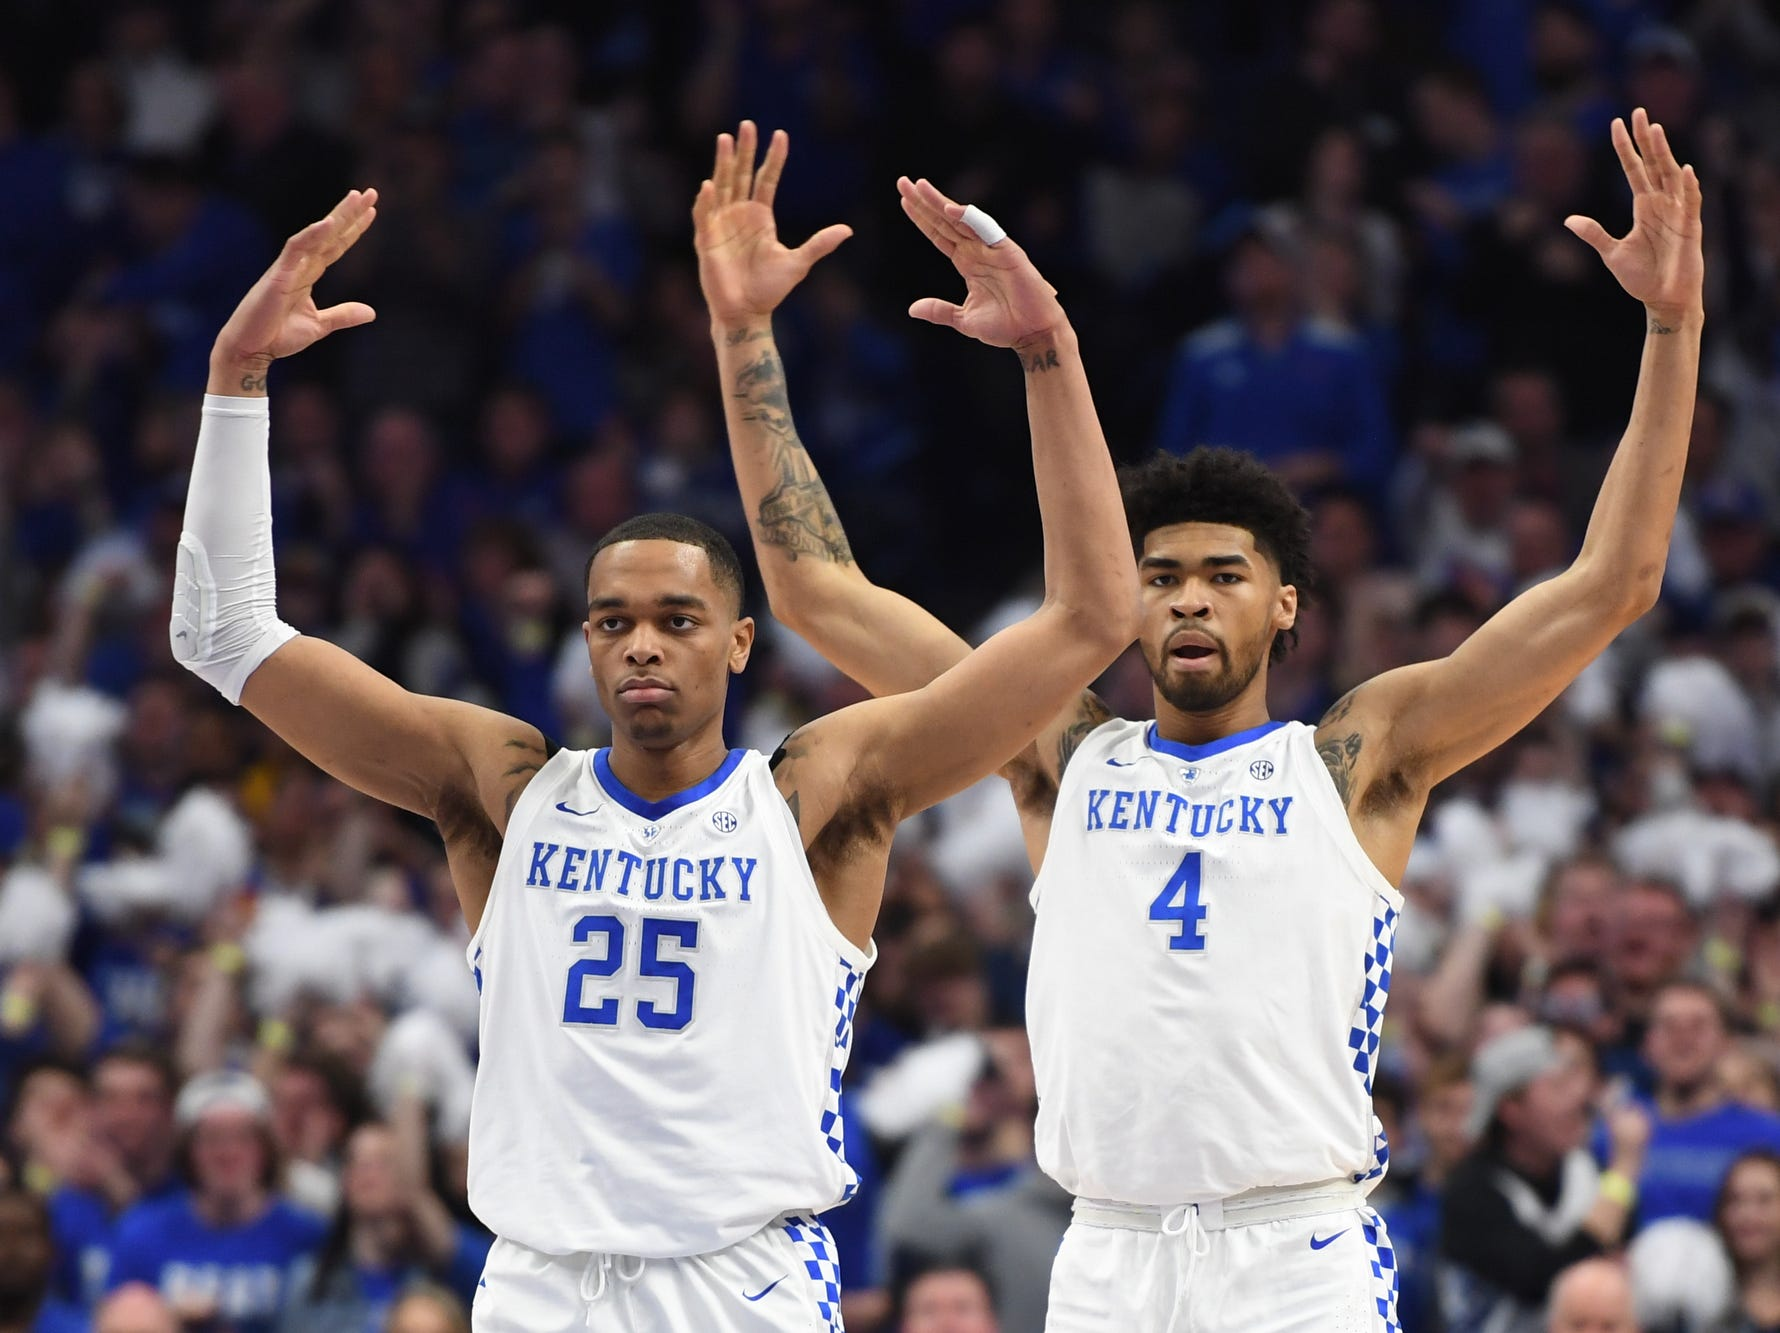 UK F PJ Washington and F Nick Richards fire up the crowd during the University of Kentucky mens basketball game against Tennessee at Rupp Arena in Lexington, Kentucky on Saturday, February 16, 2019.